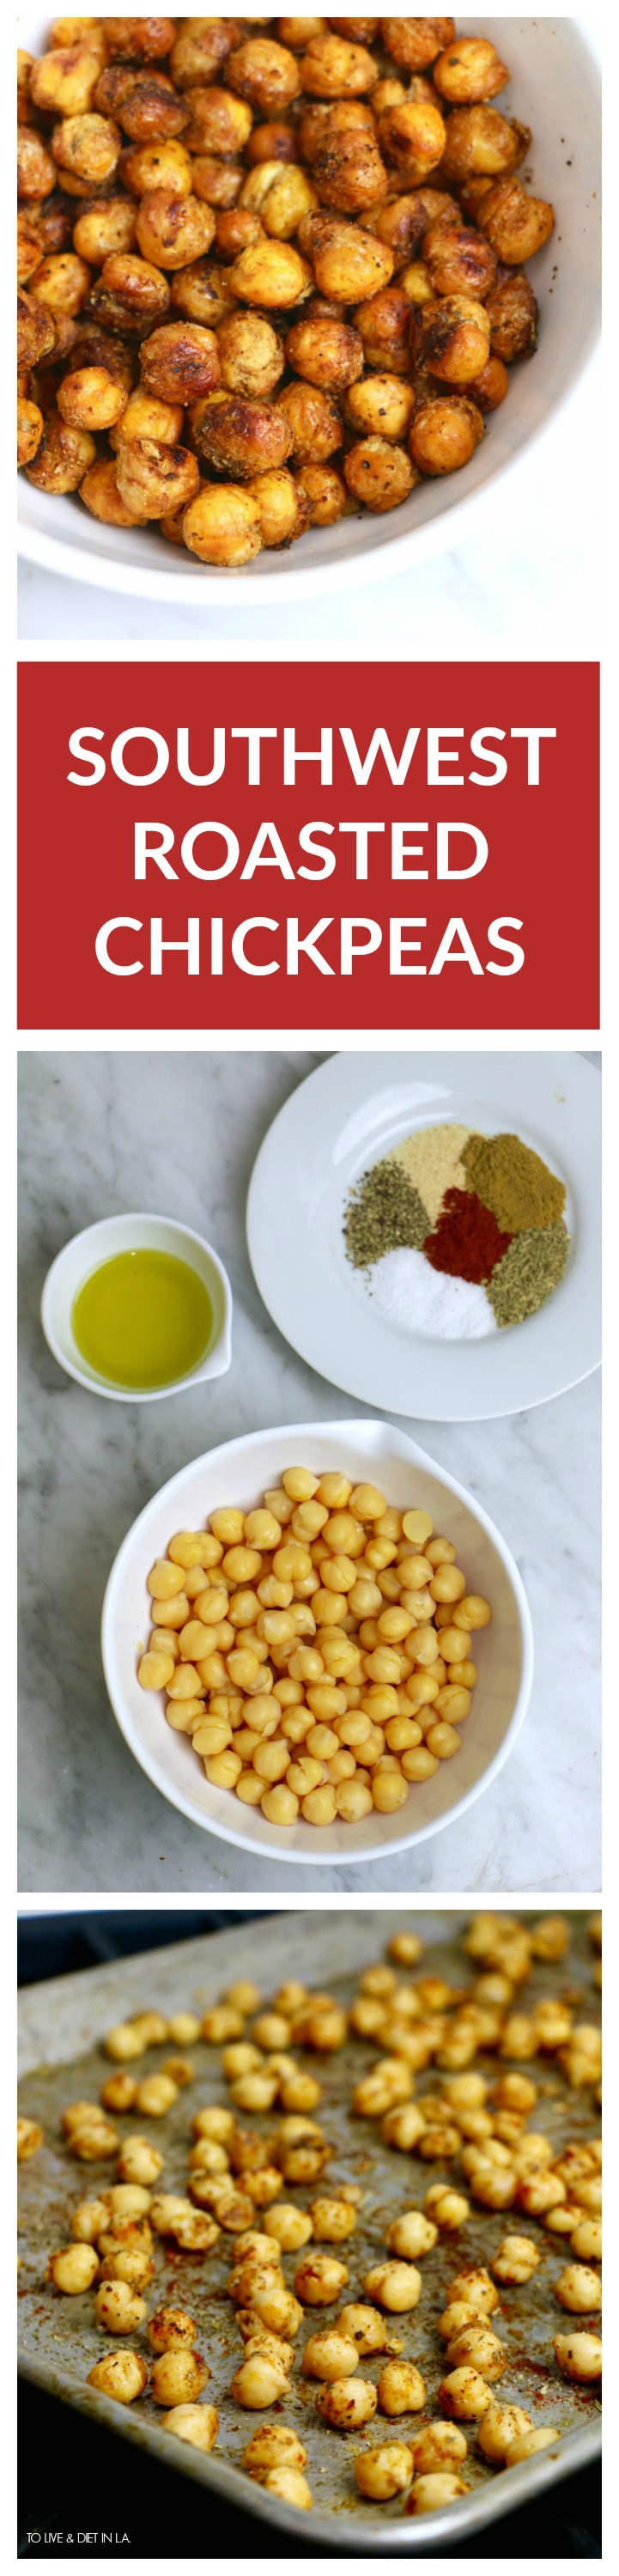 How To Southwest Roasted Chickpeas